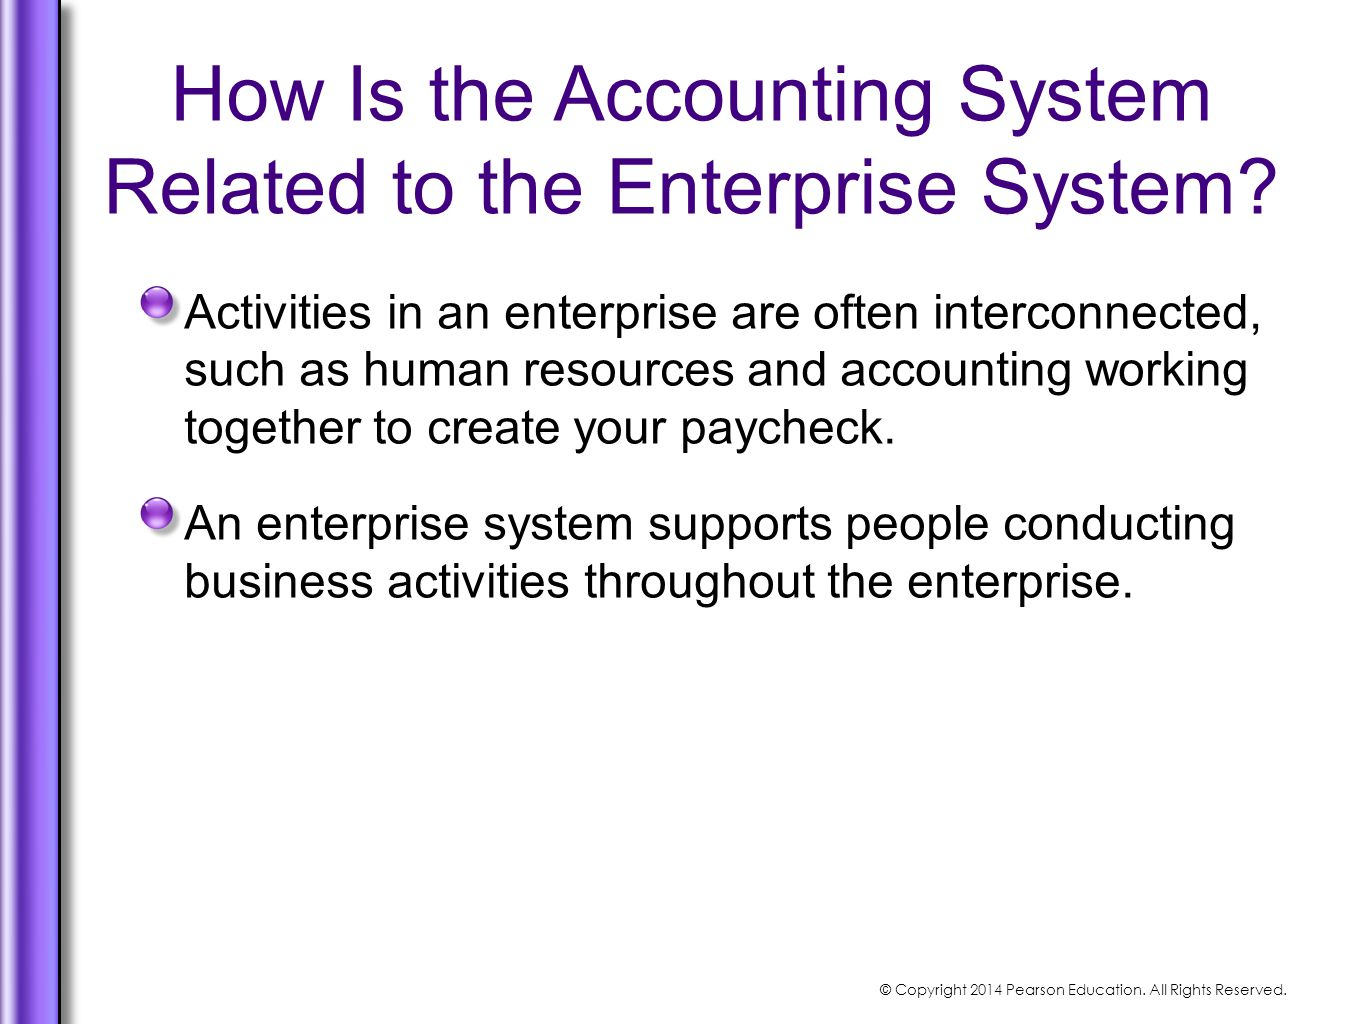 How Is the Accounting System Related to the Enterprise System